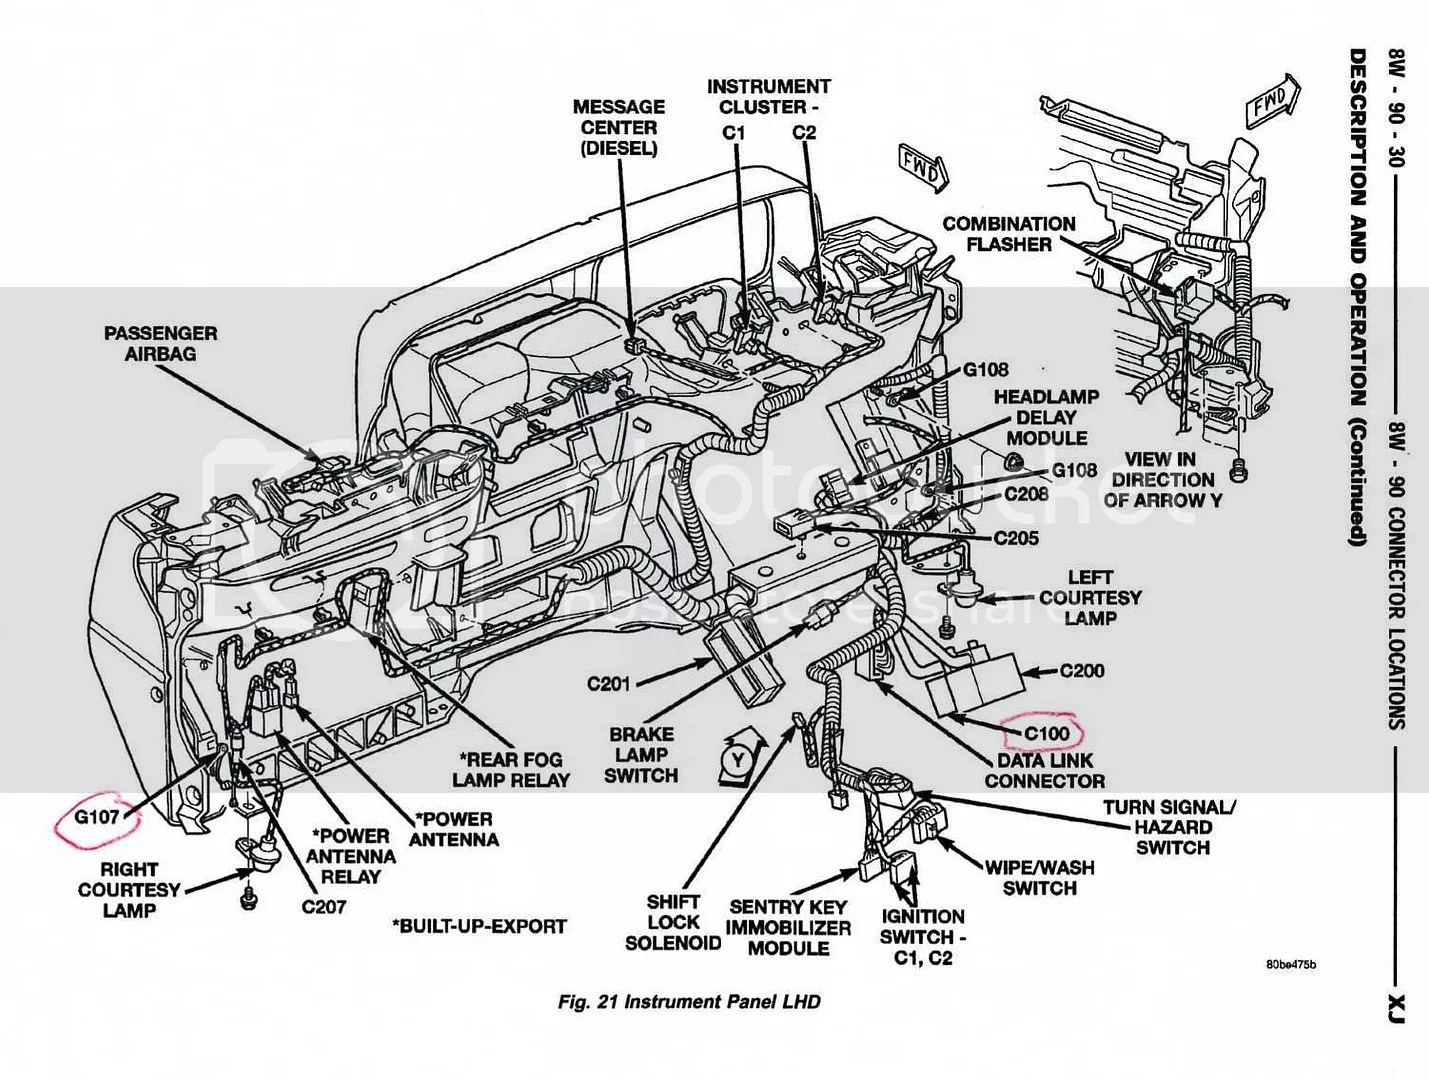 hight resolution of 2003 jeep grand cherokee engine diagram wiring diagram 1999 grand cherokee engine diagram